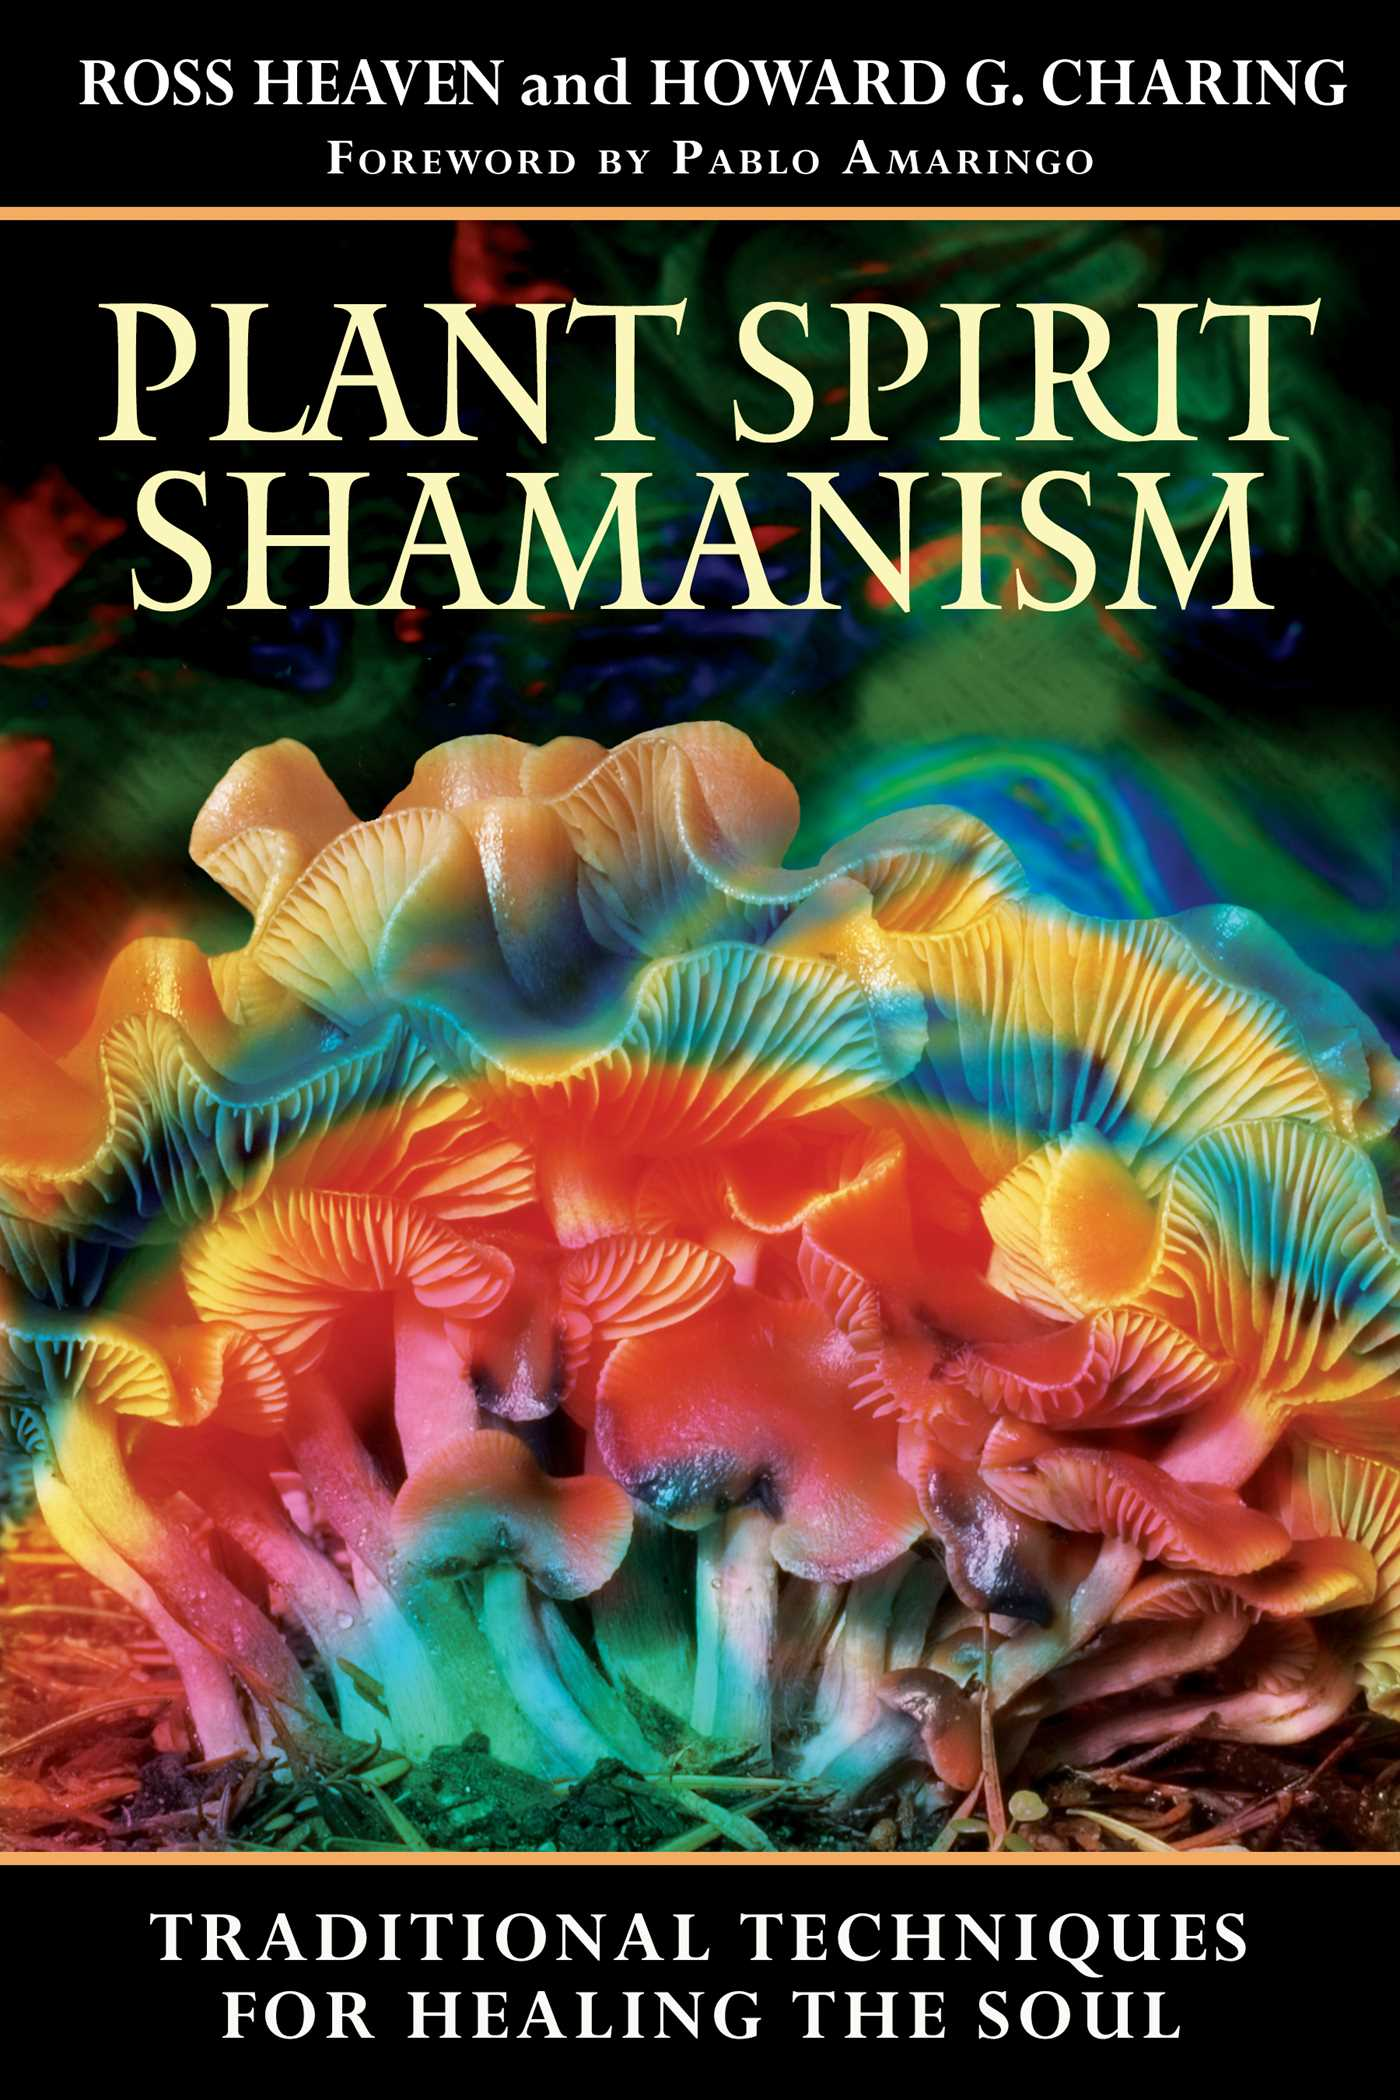 Plant spirit shamanism 9781594776663 hr